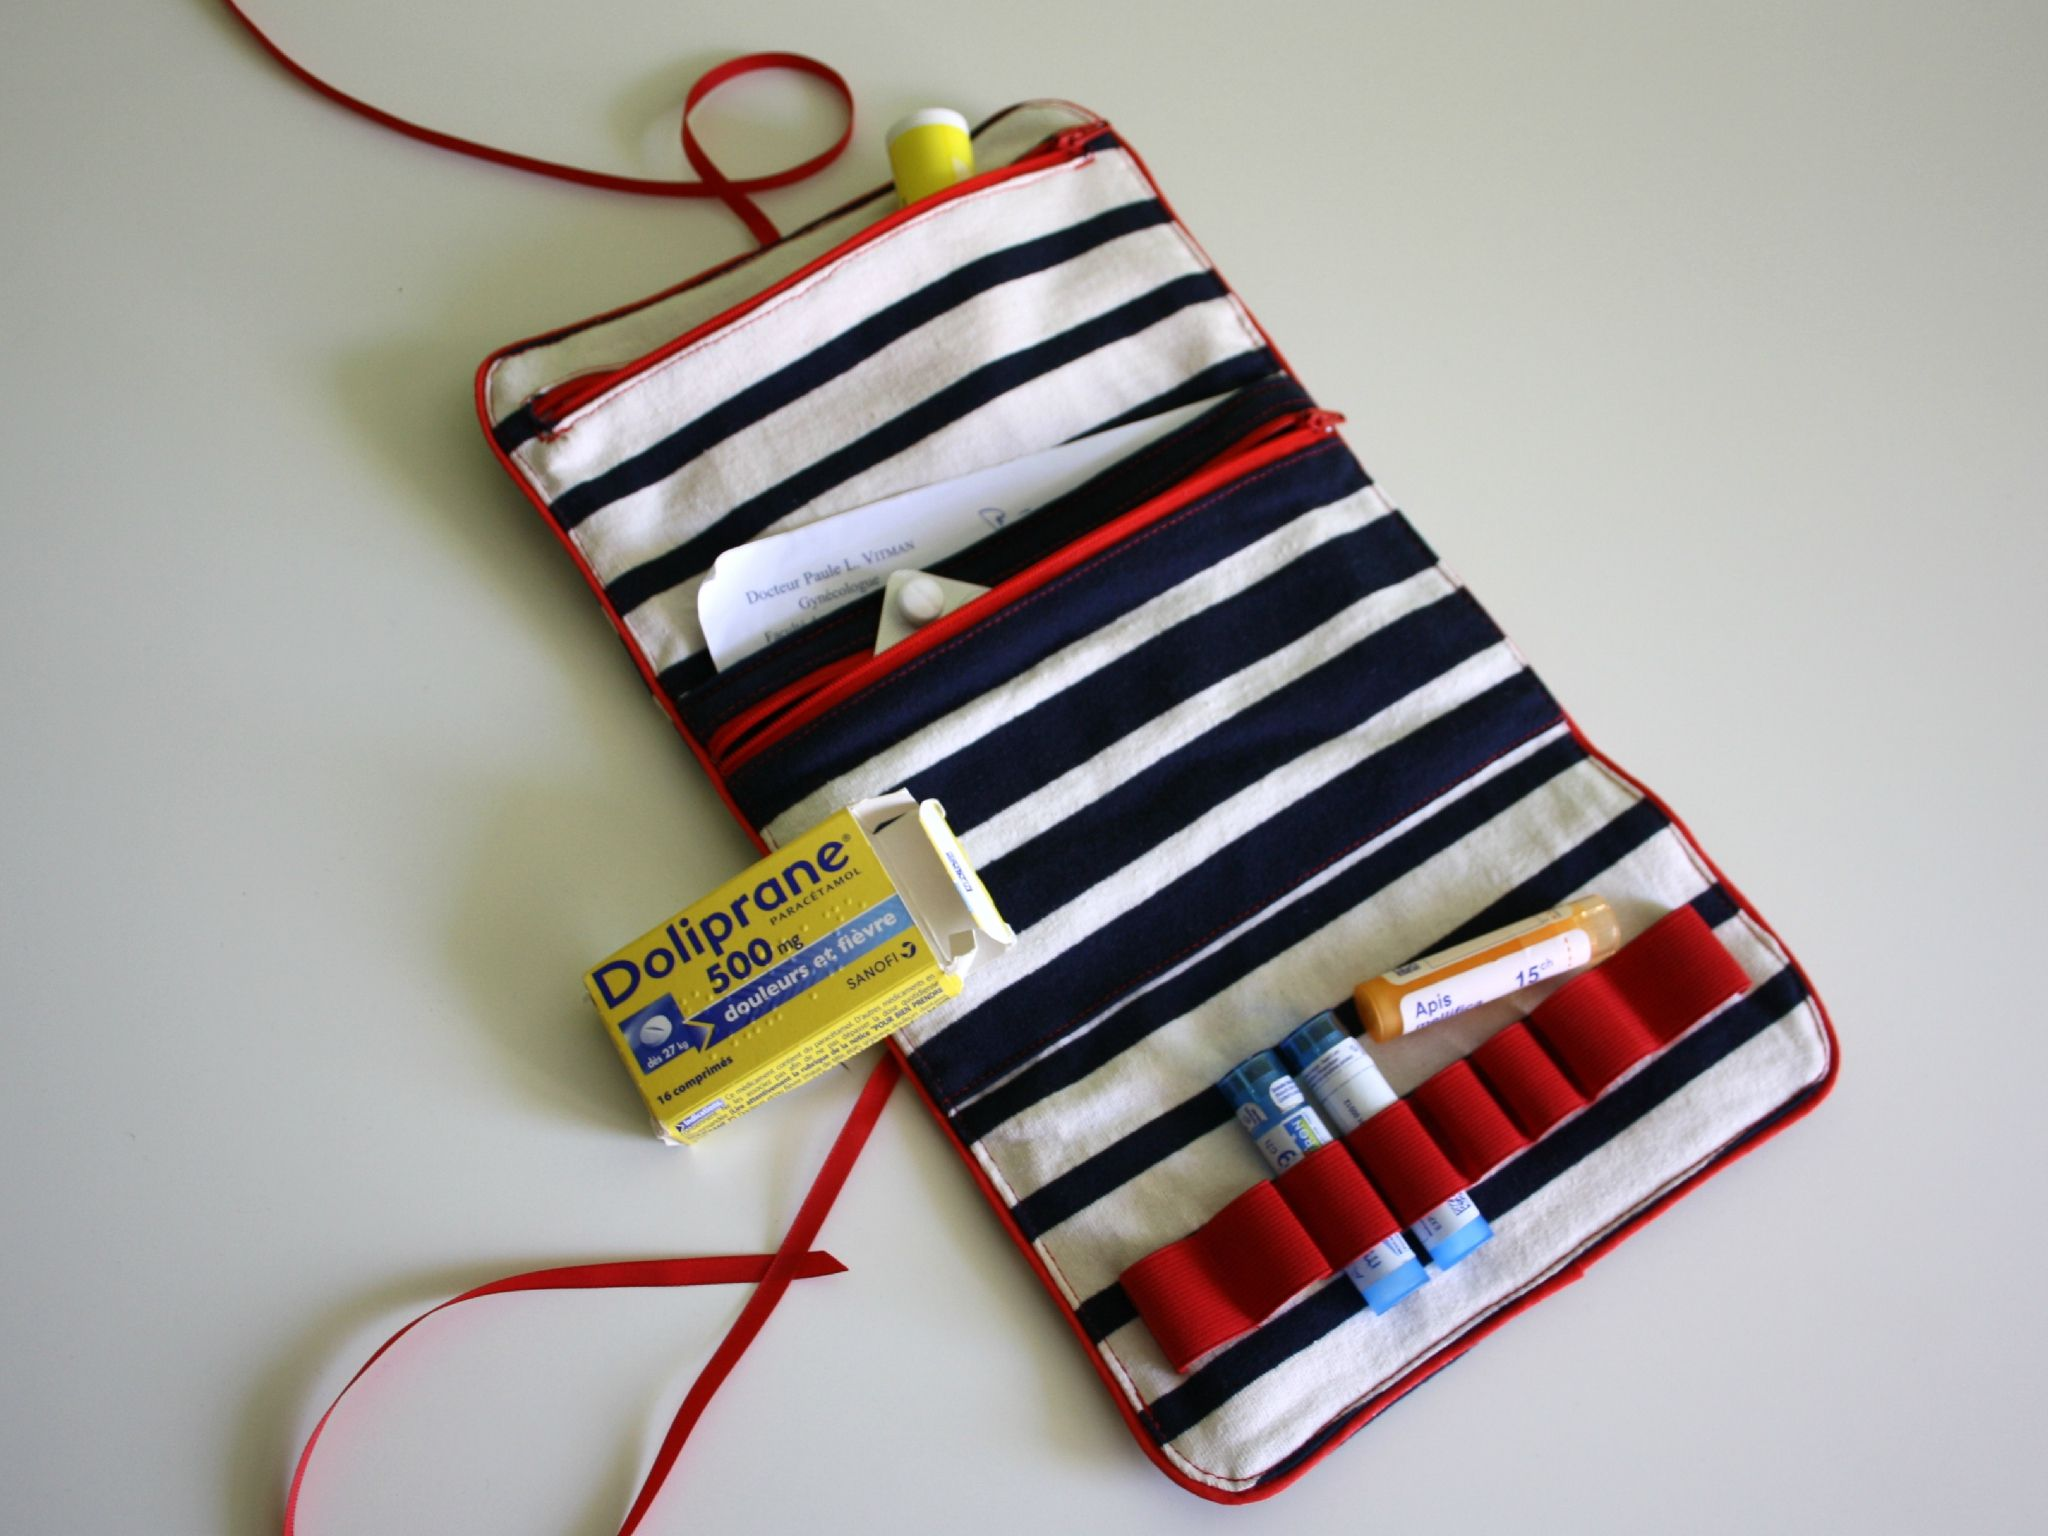 17 best ideas about trousse pharmacie on pinterest for Couture trousse